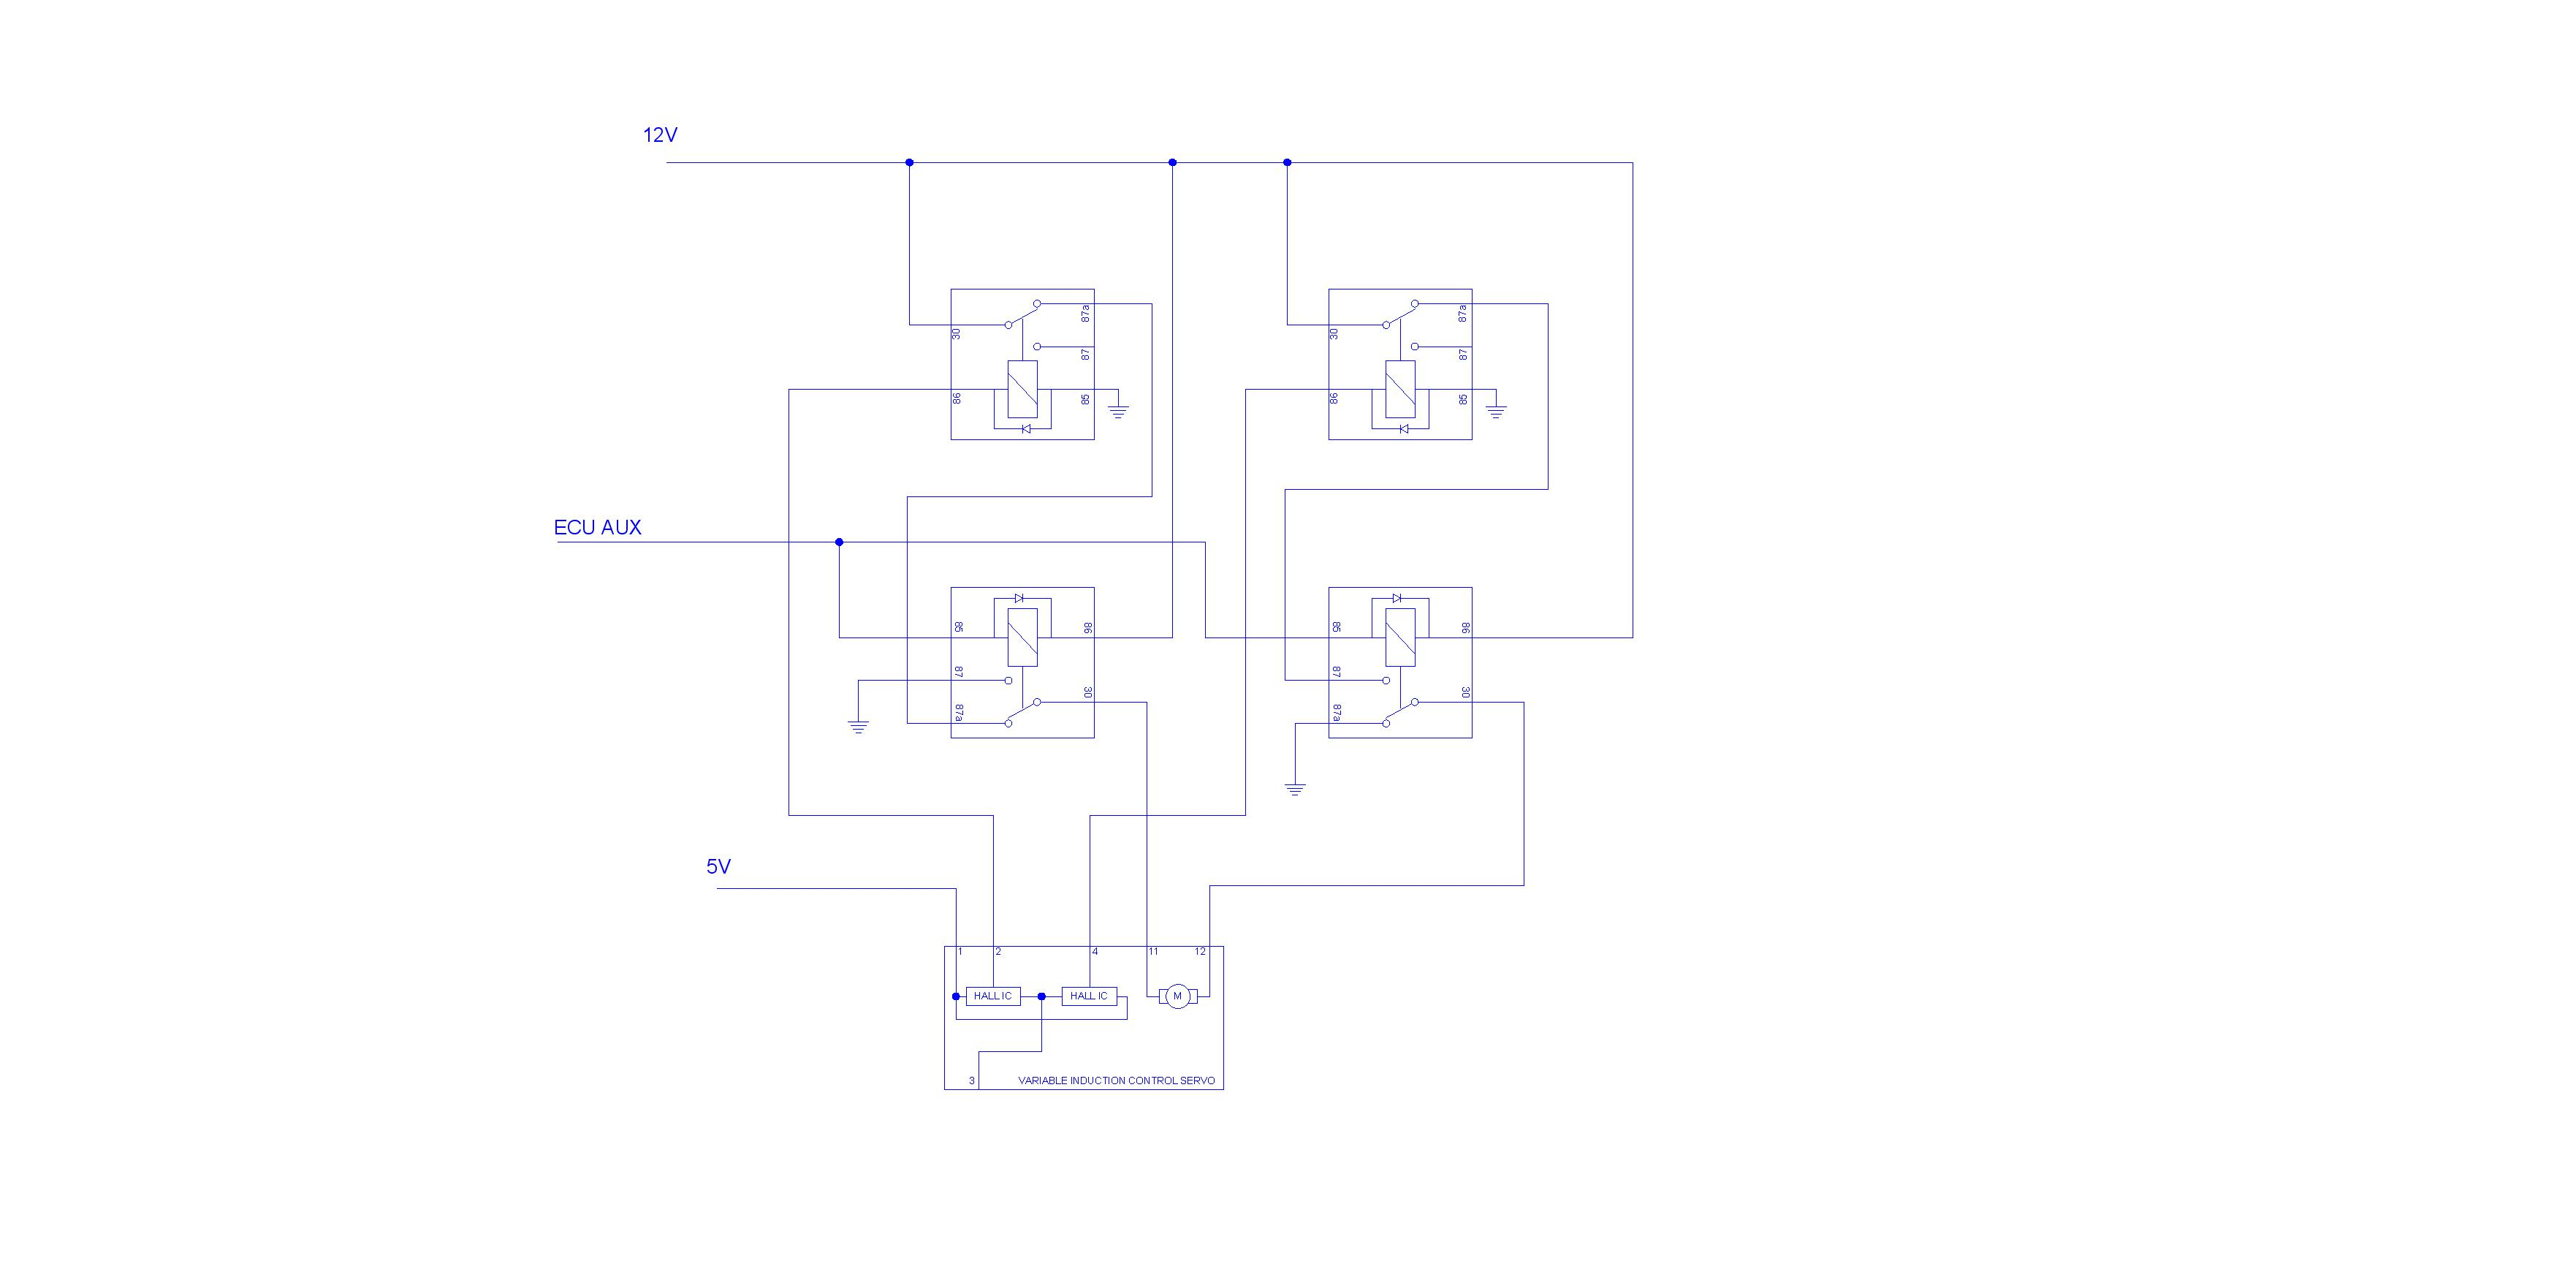 Mitsubishi Engine 6a12 Mivec Wiring Diagram 4g93 Advice Required G4 Link Management Rh Forums Linkecu Com